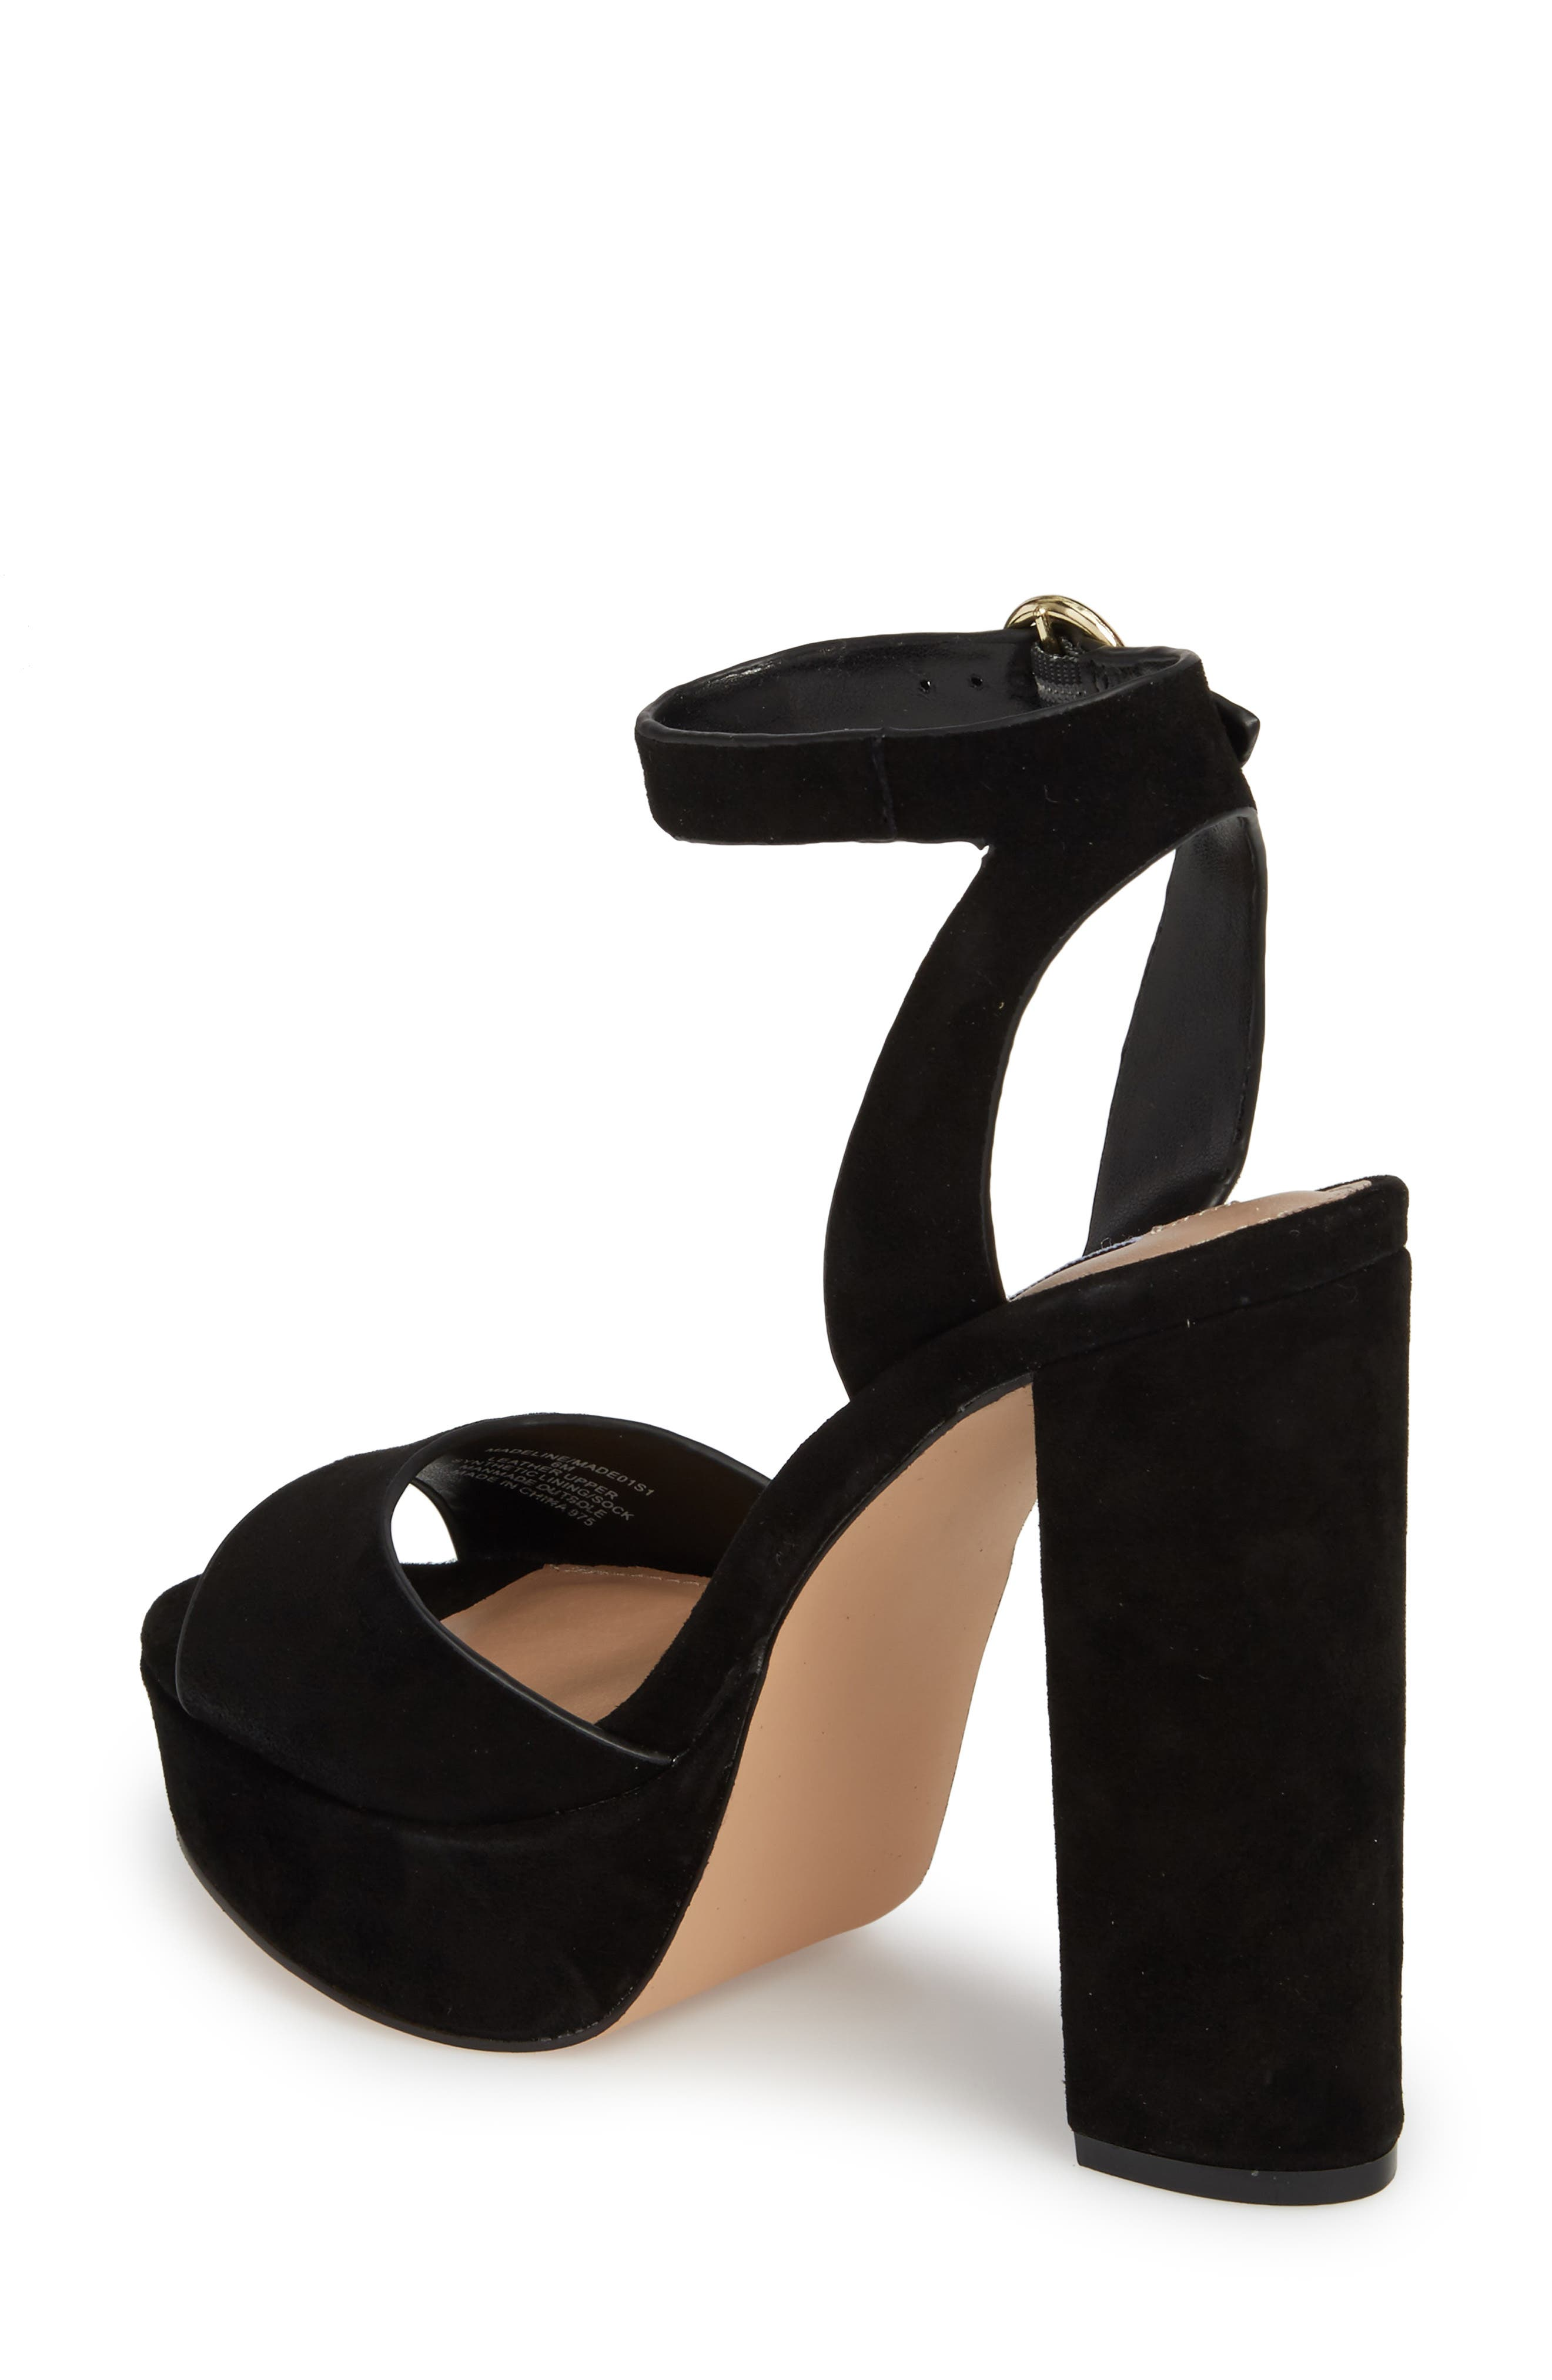 STEVE MADDEN, Madeline Platform Sandal, Alternate thumbnail 2, color, BLACK SUEDE